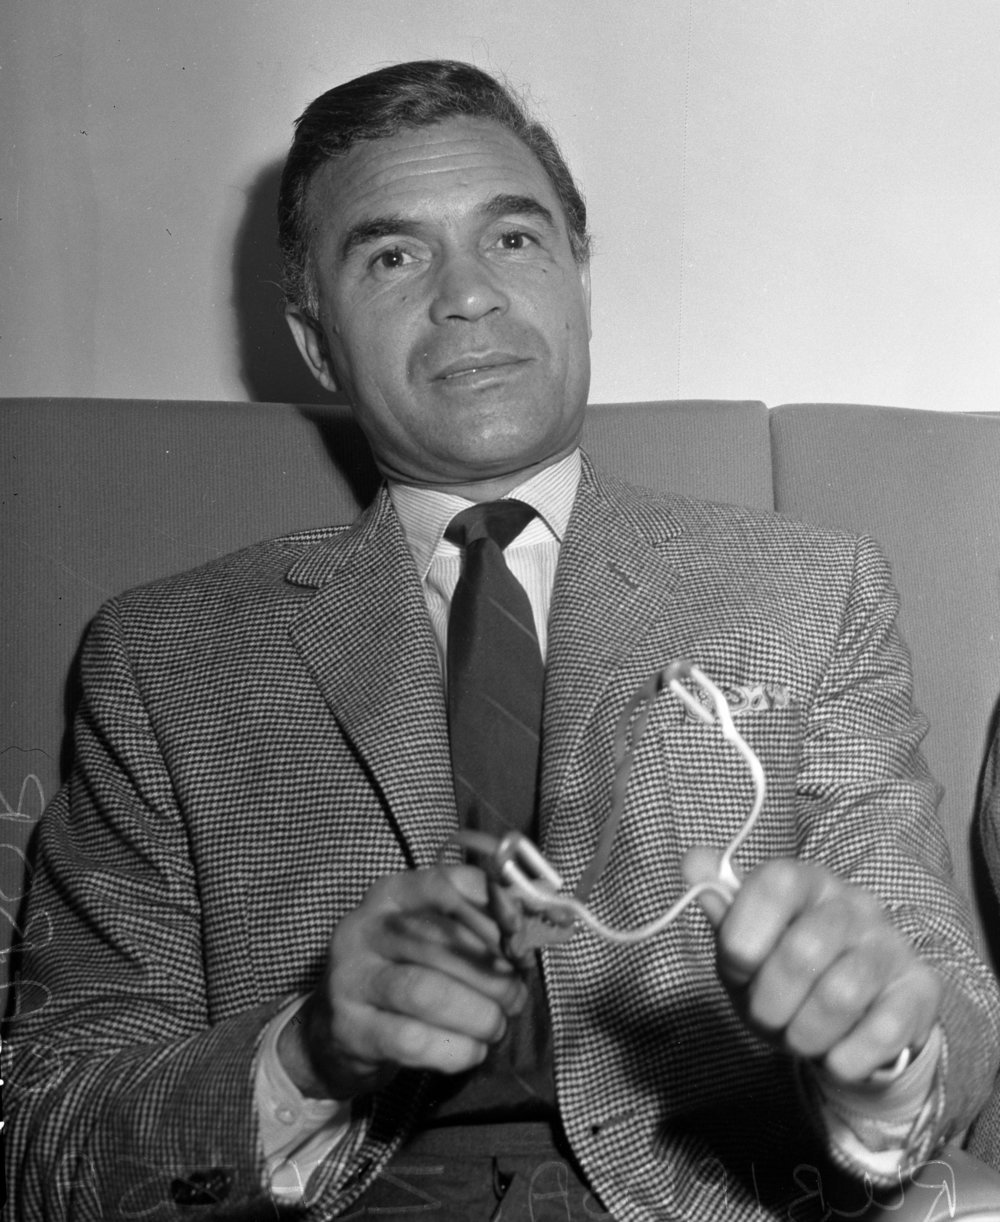 Random Fact: - Porfirio Rubirosa married two of the richest women in the world in his lifetime.